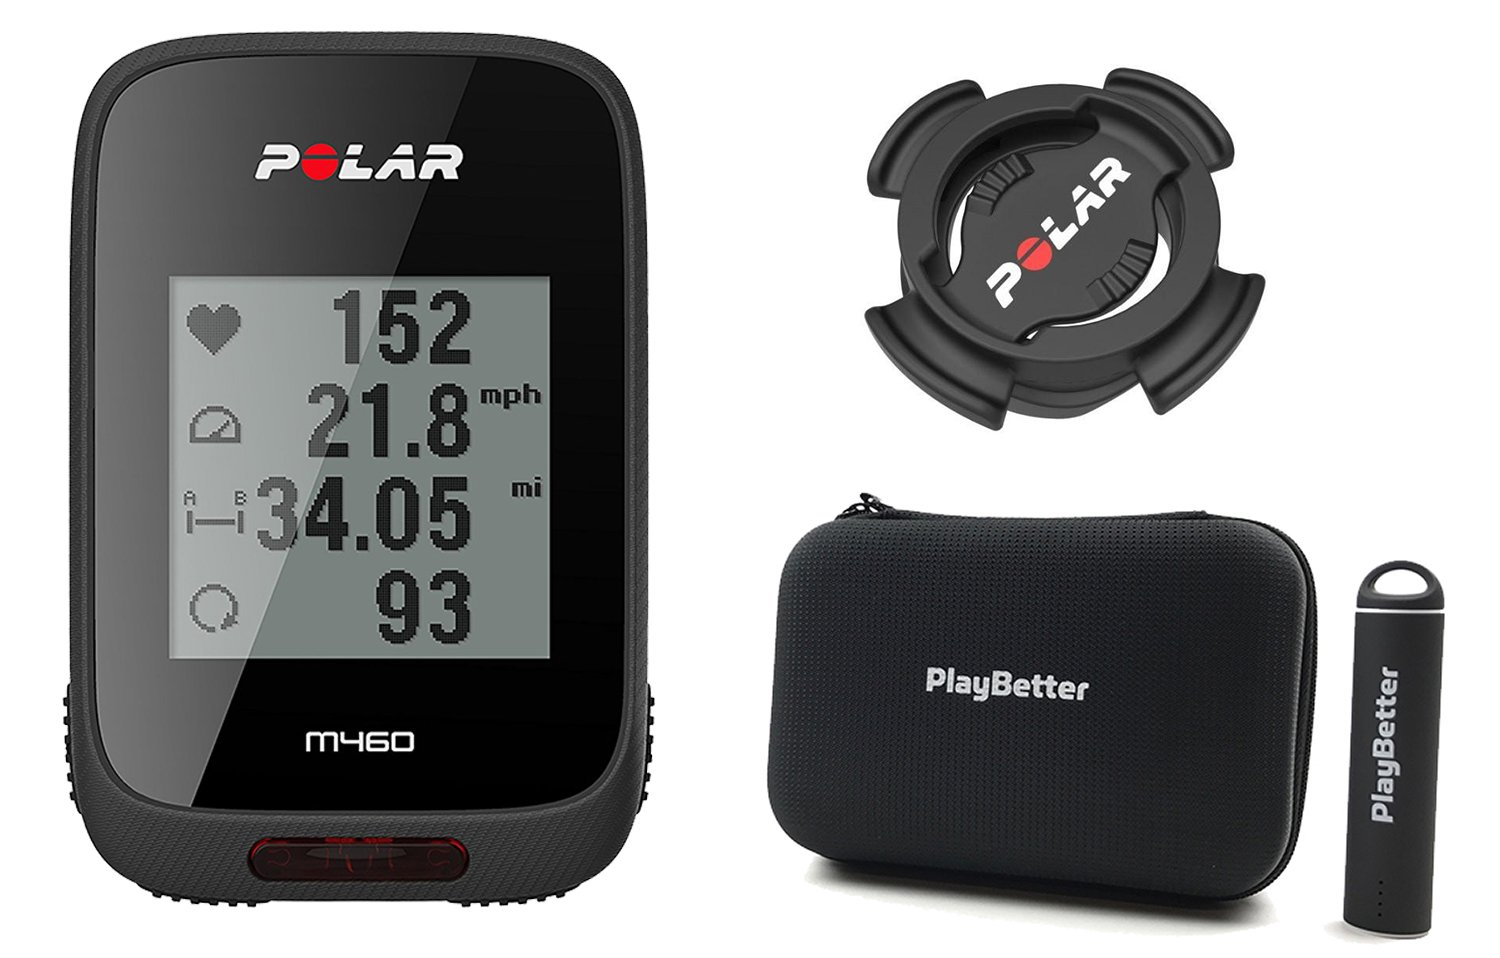 Polar M460 GPS Bike Computer with PlayBetter Portable USB Charger, Hard Carrying Case & Bike Mount POWER BUNDLE | Strava Live Segments, Smart Notifications